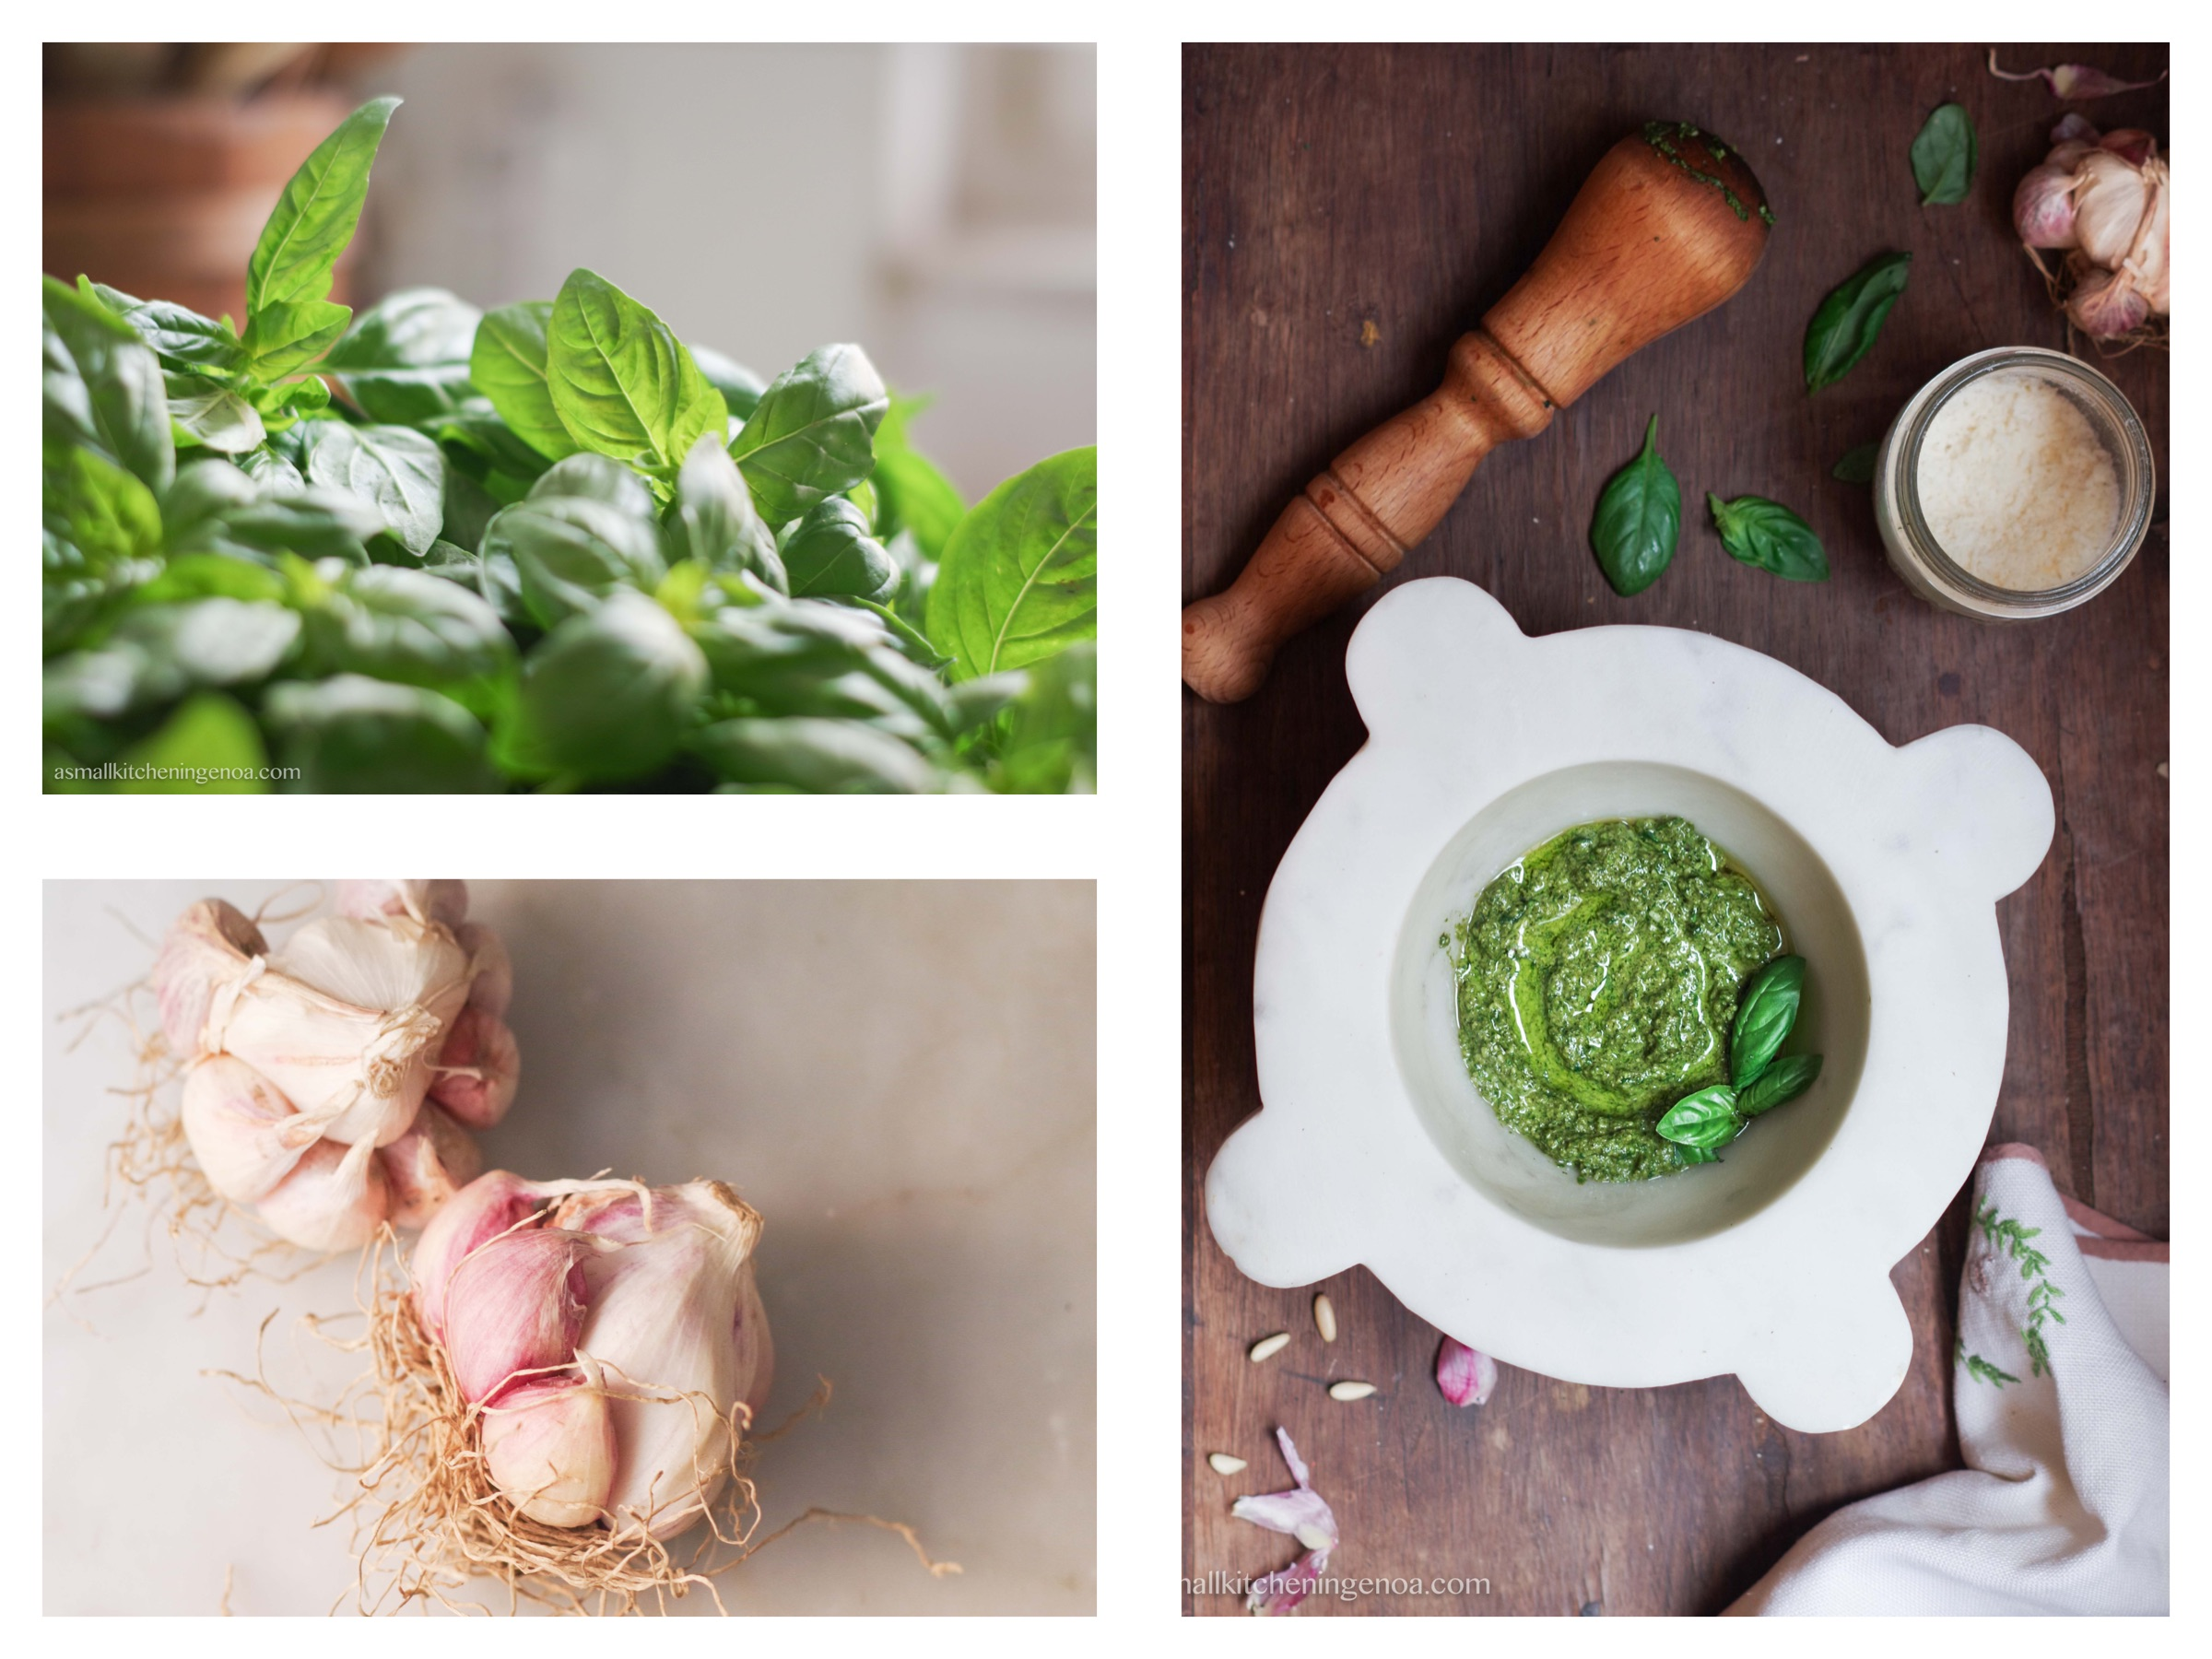 Genoa basil pesto sauce: pesto recipe, pesto ingredients, pesto secrets from Genoa